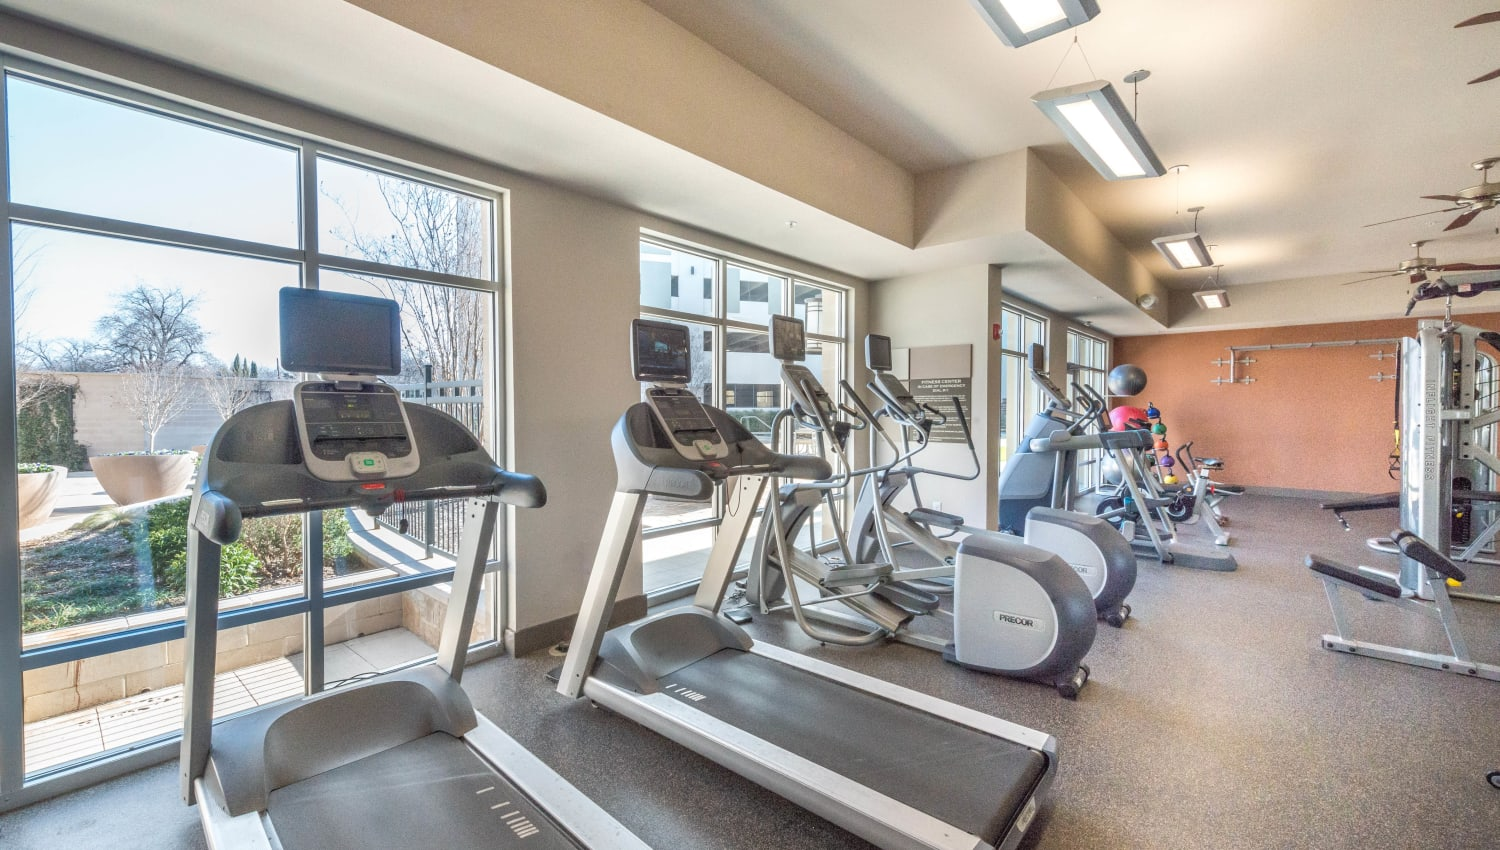 Treadmills and stair climbers in the onsite fitness center at Union At Carrollton Square in Carrollton, Texas